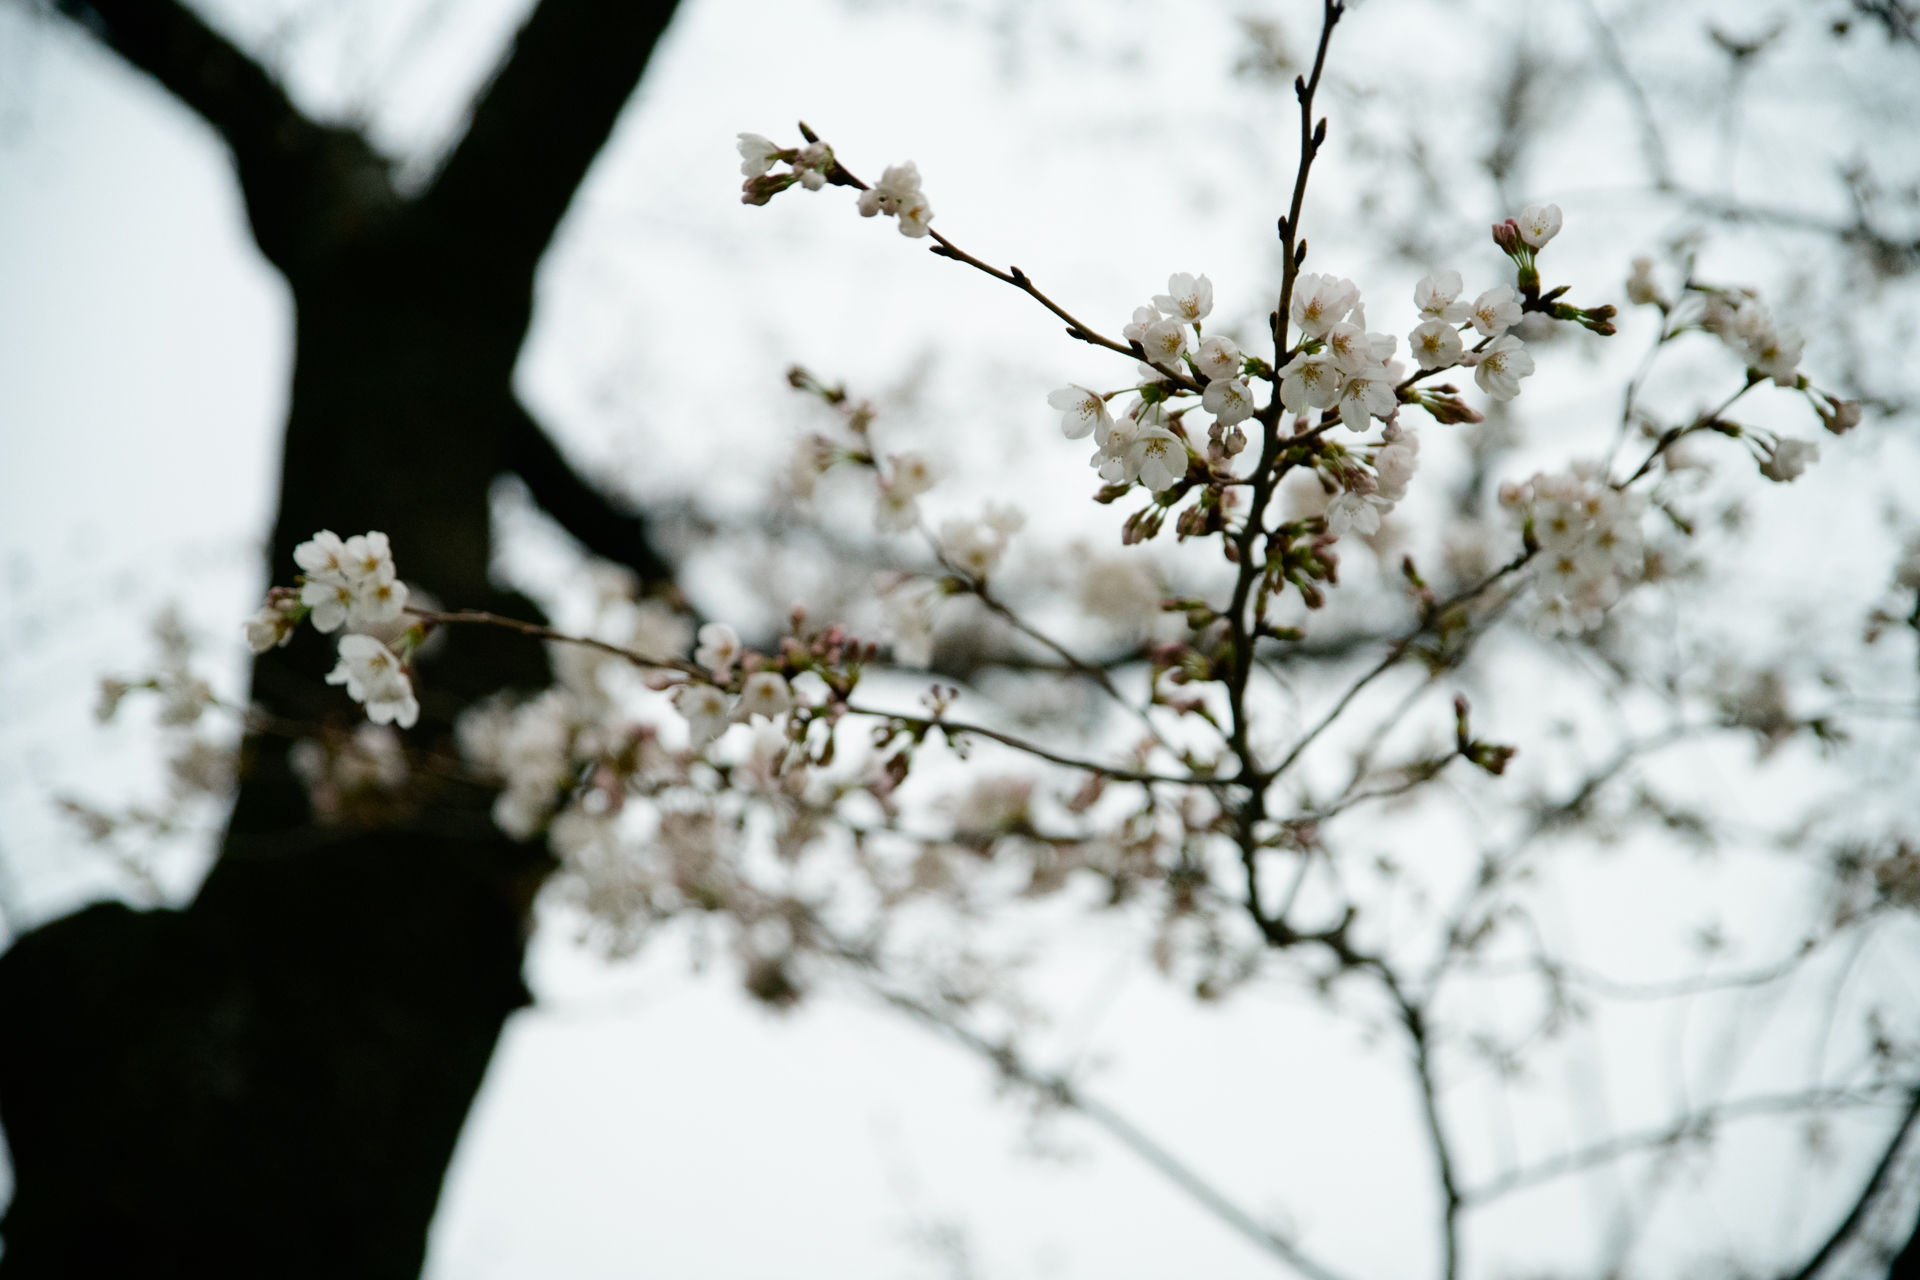 千鳥ヶ淵 桜 D850+SP 24-70mm F/2.8 Di VC USD G2